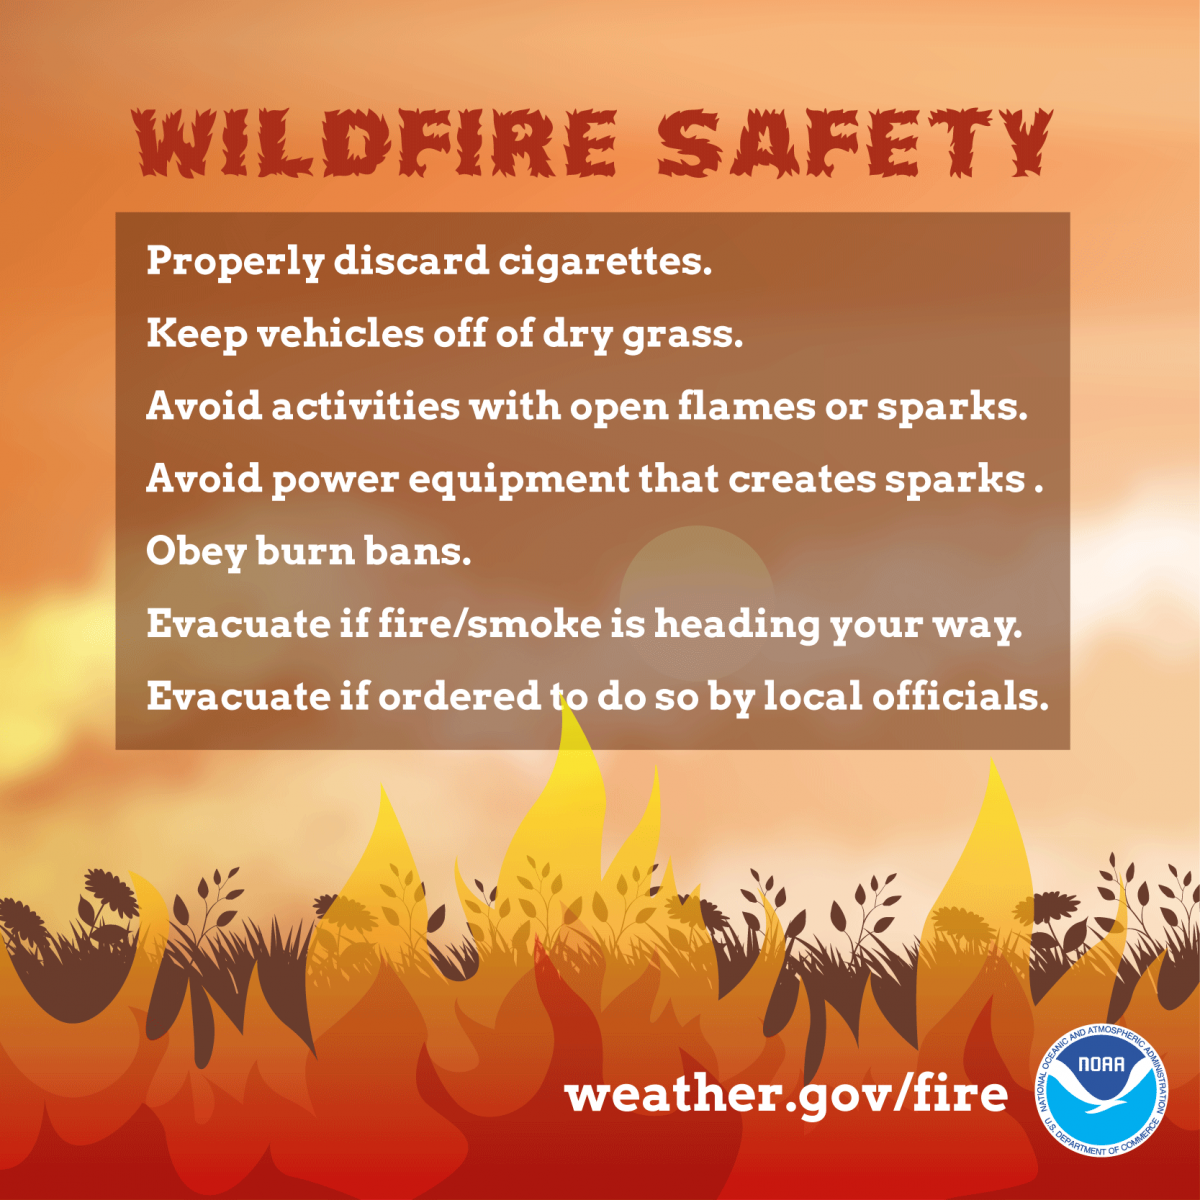 Wildfire Safety: